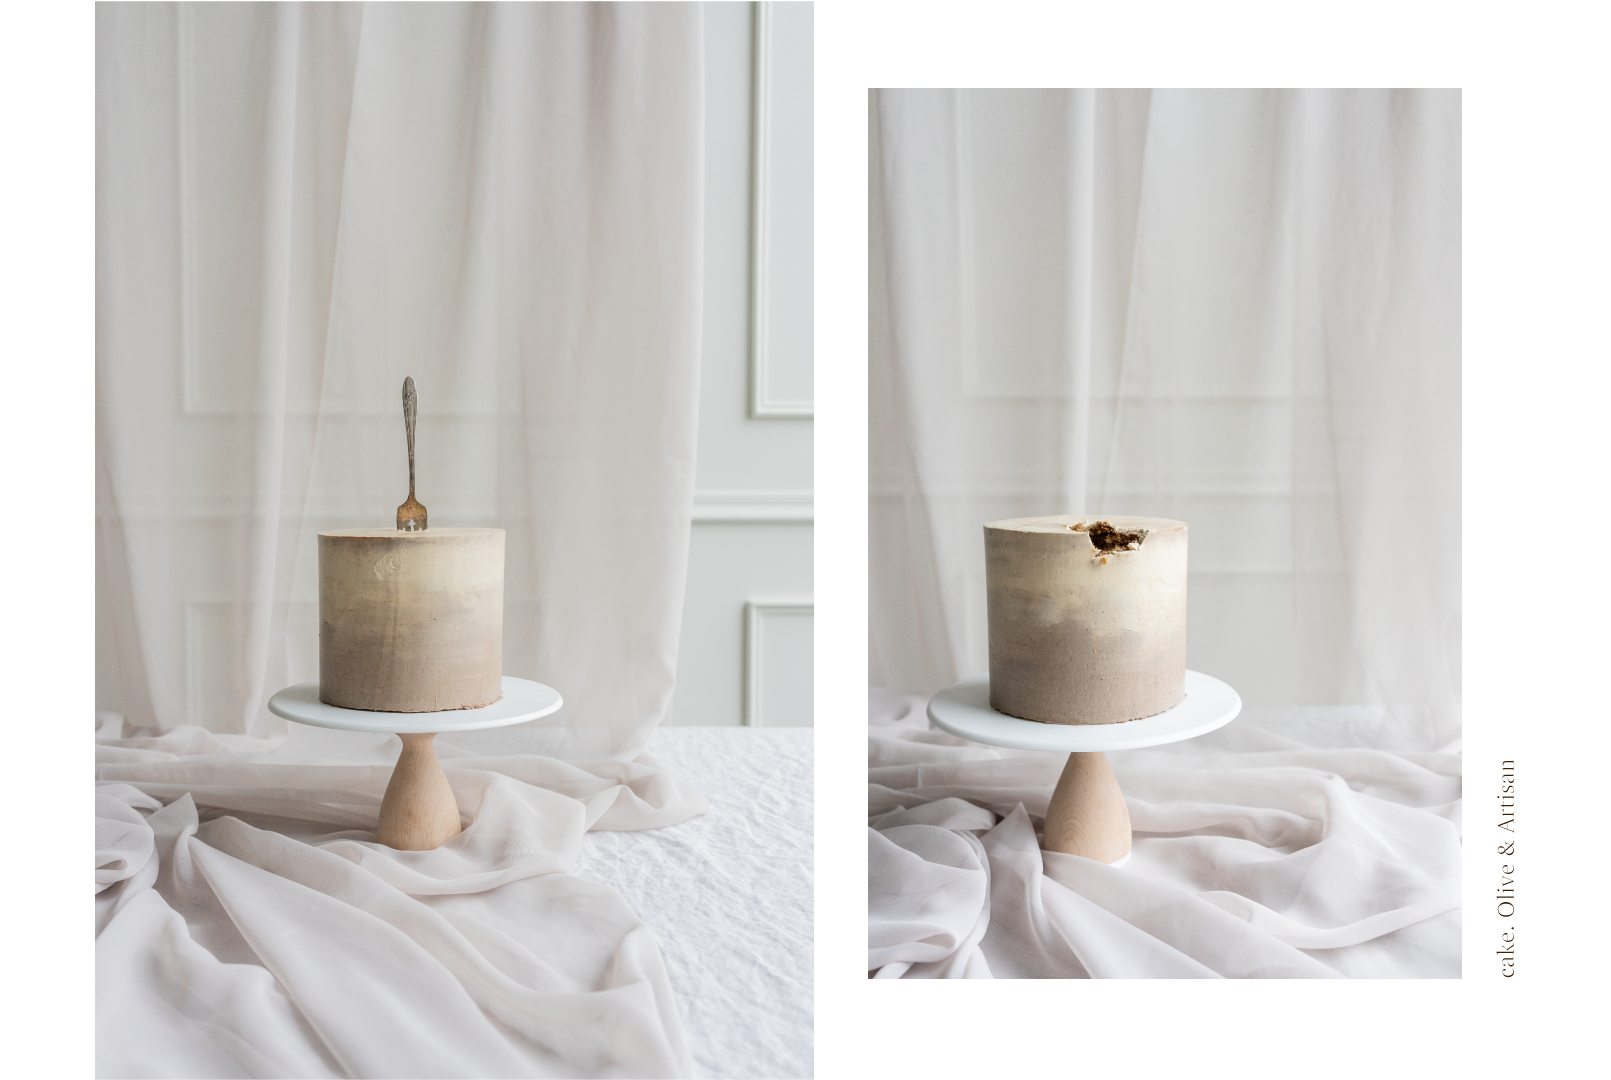 Birthday-Cake_Lifestyle-Photography-and-Styling.png